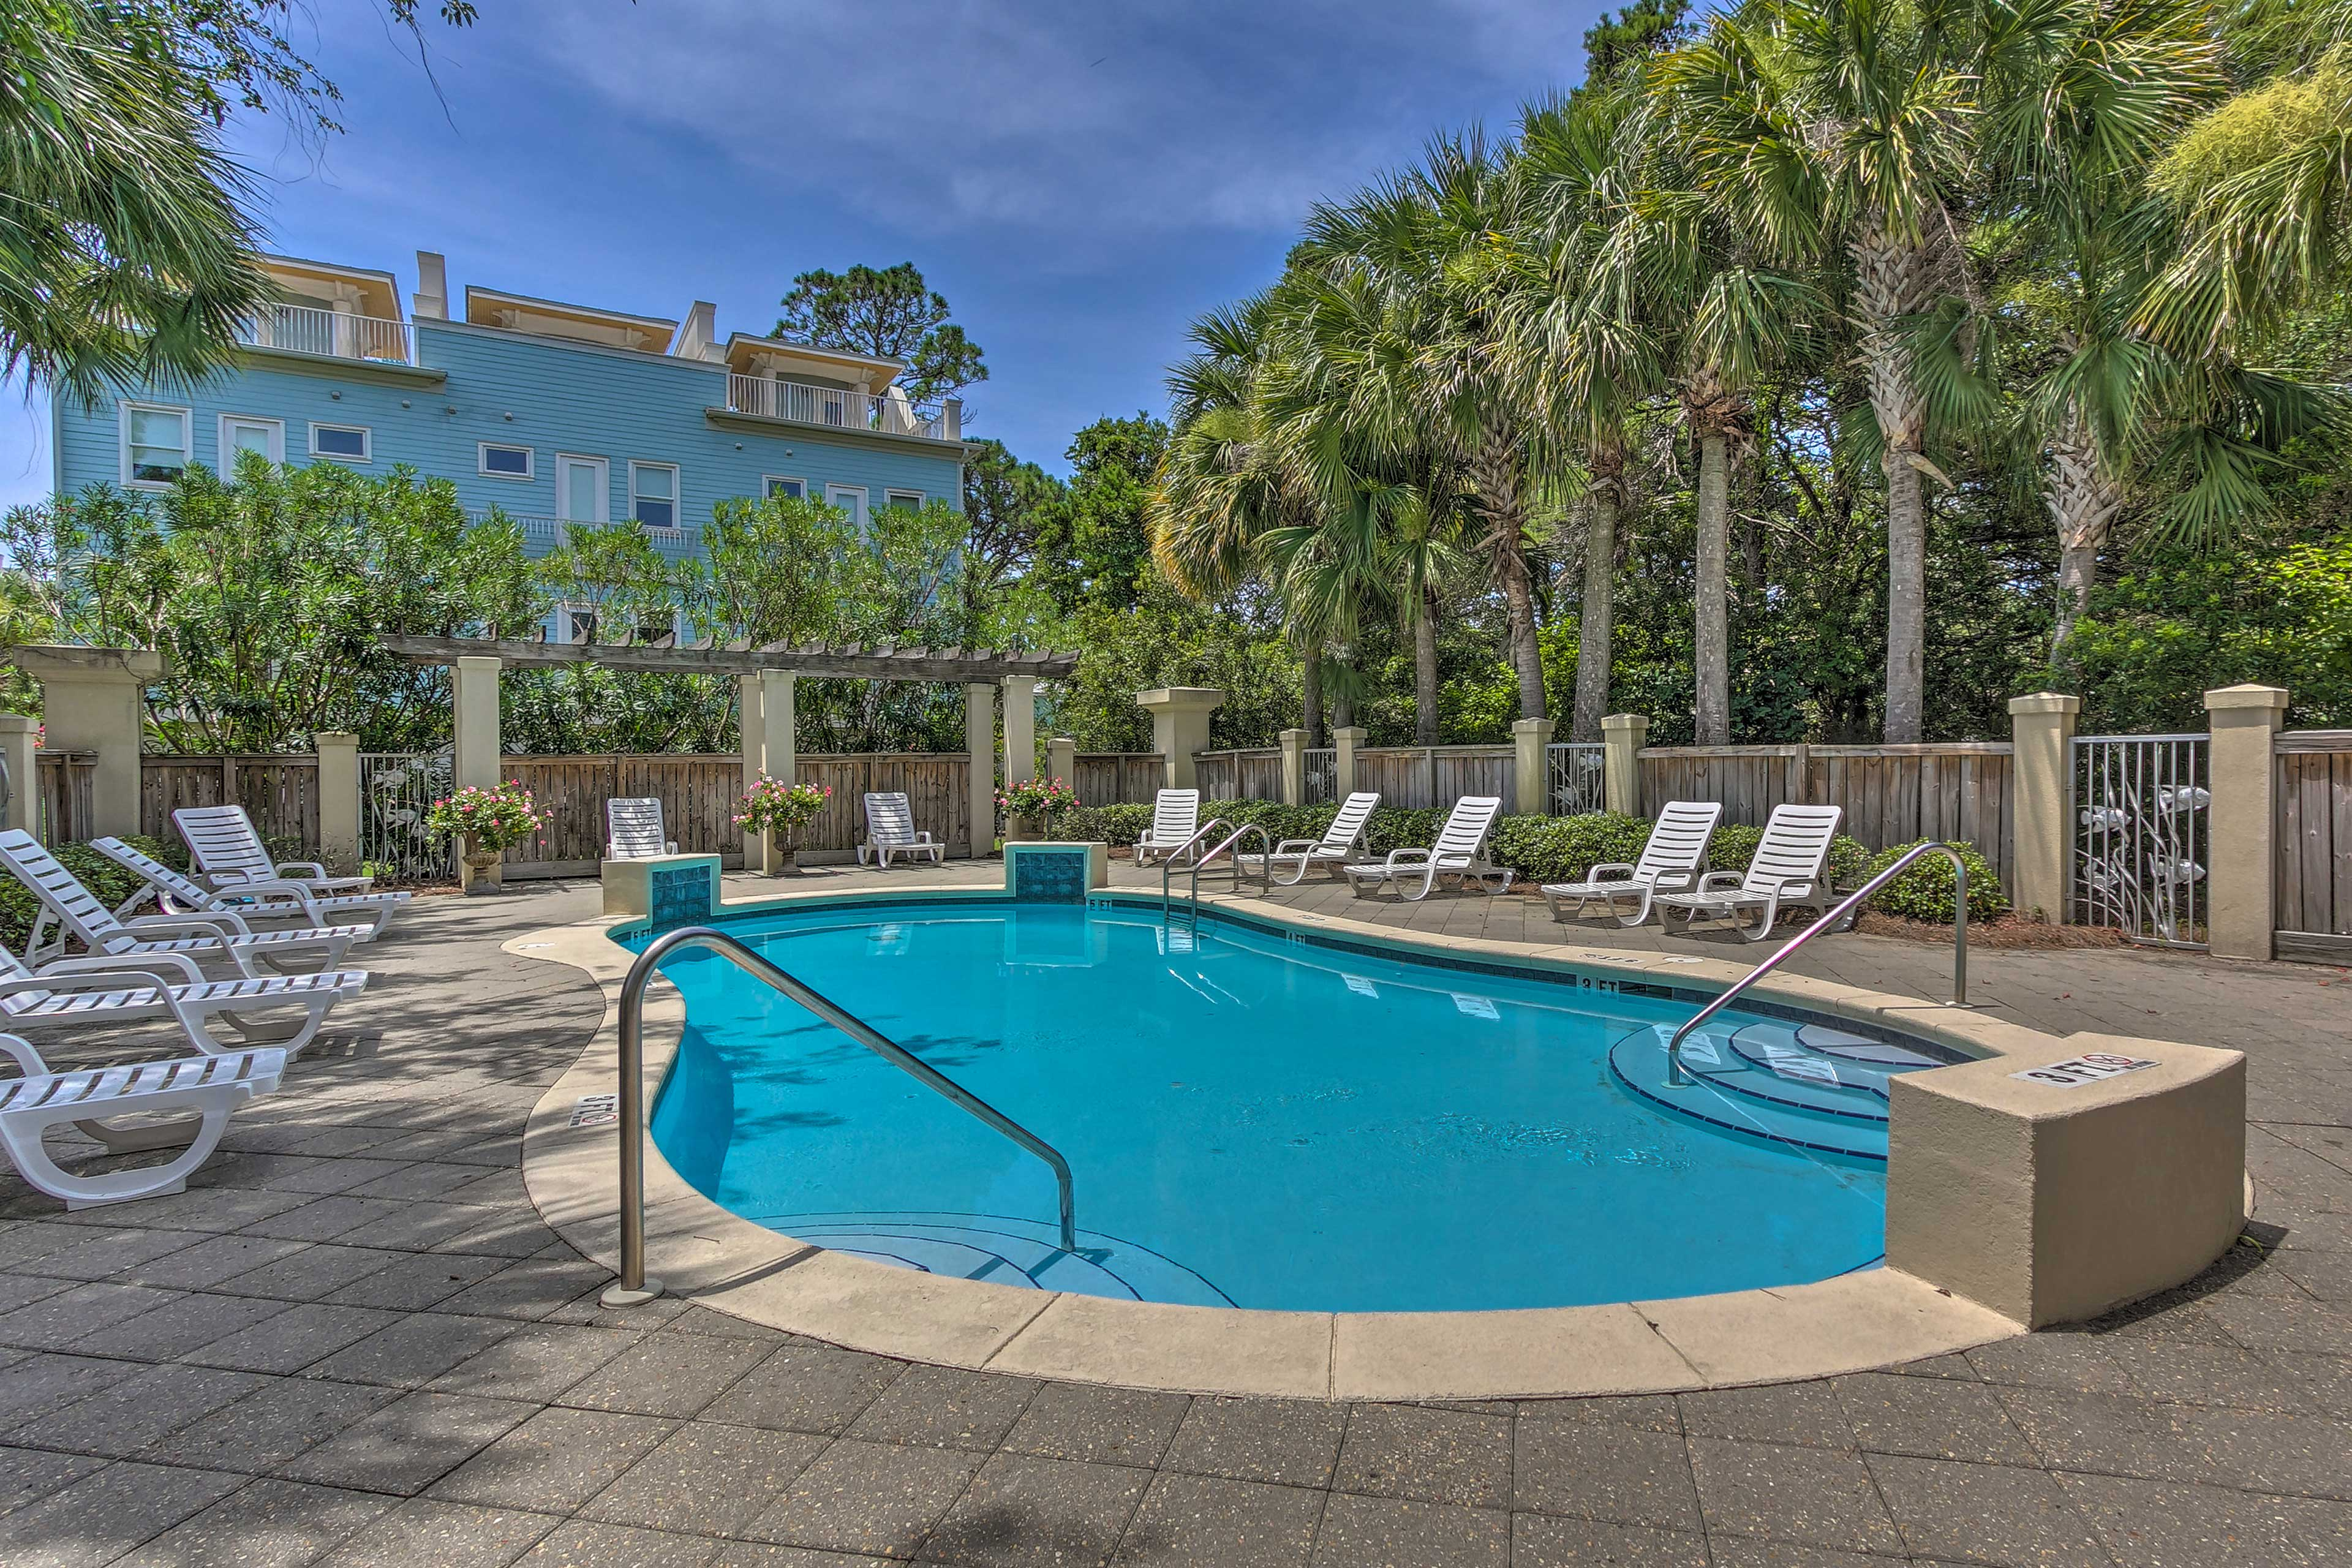 Relax at the community pool when you're not at the beach!